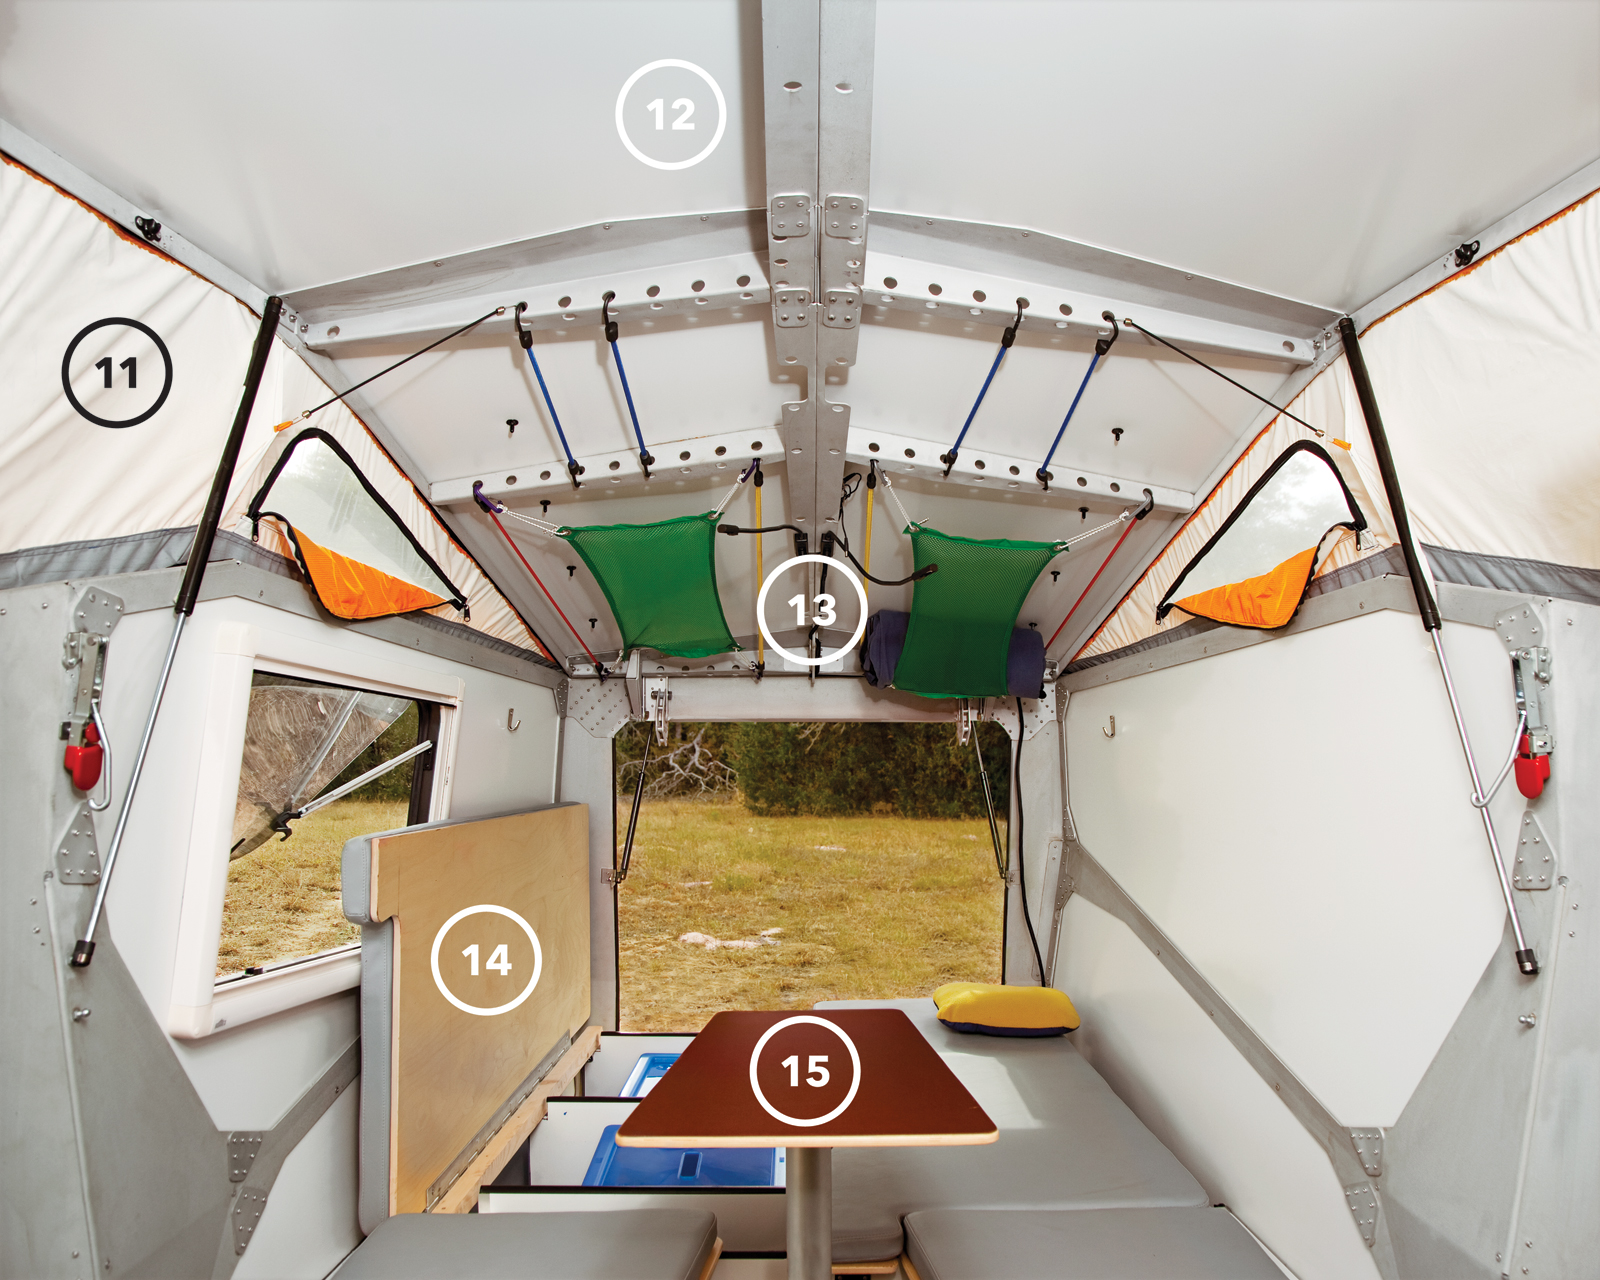 While the front, kitchen-end of the camper is all action, the back half is about rest and relaxation. The benches hide storage space beneath and, at night, become the sleeping area (14). The multiheight table (15) serves as an eating spot when in its high